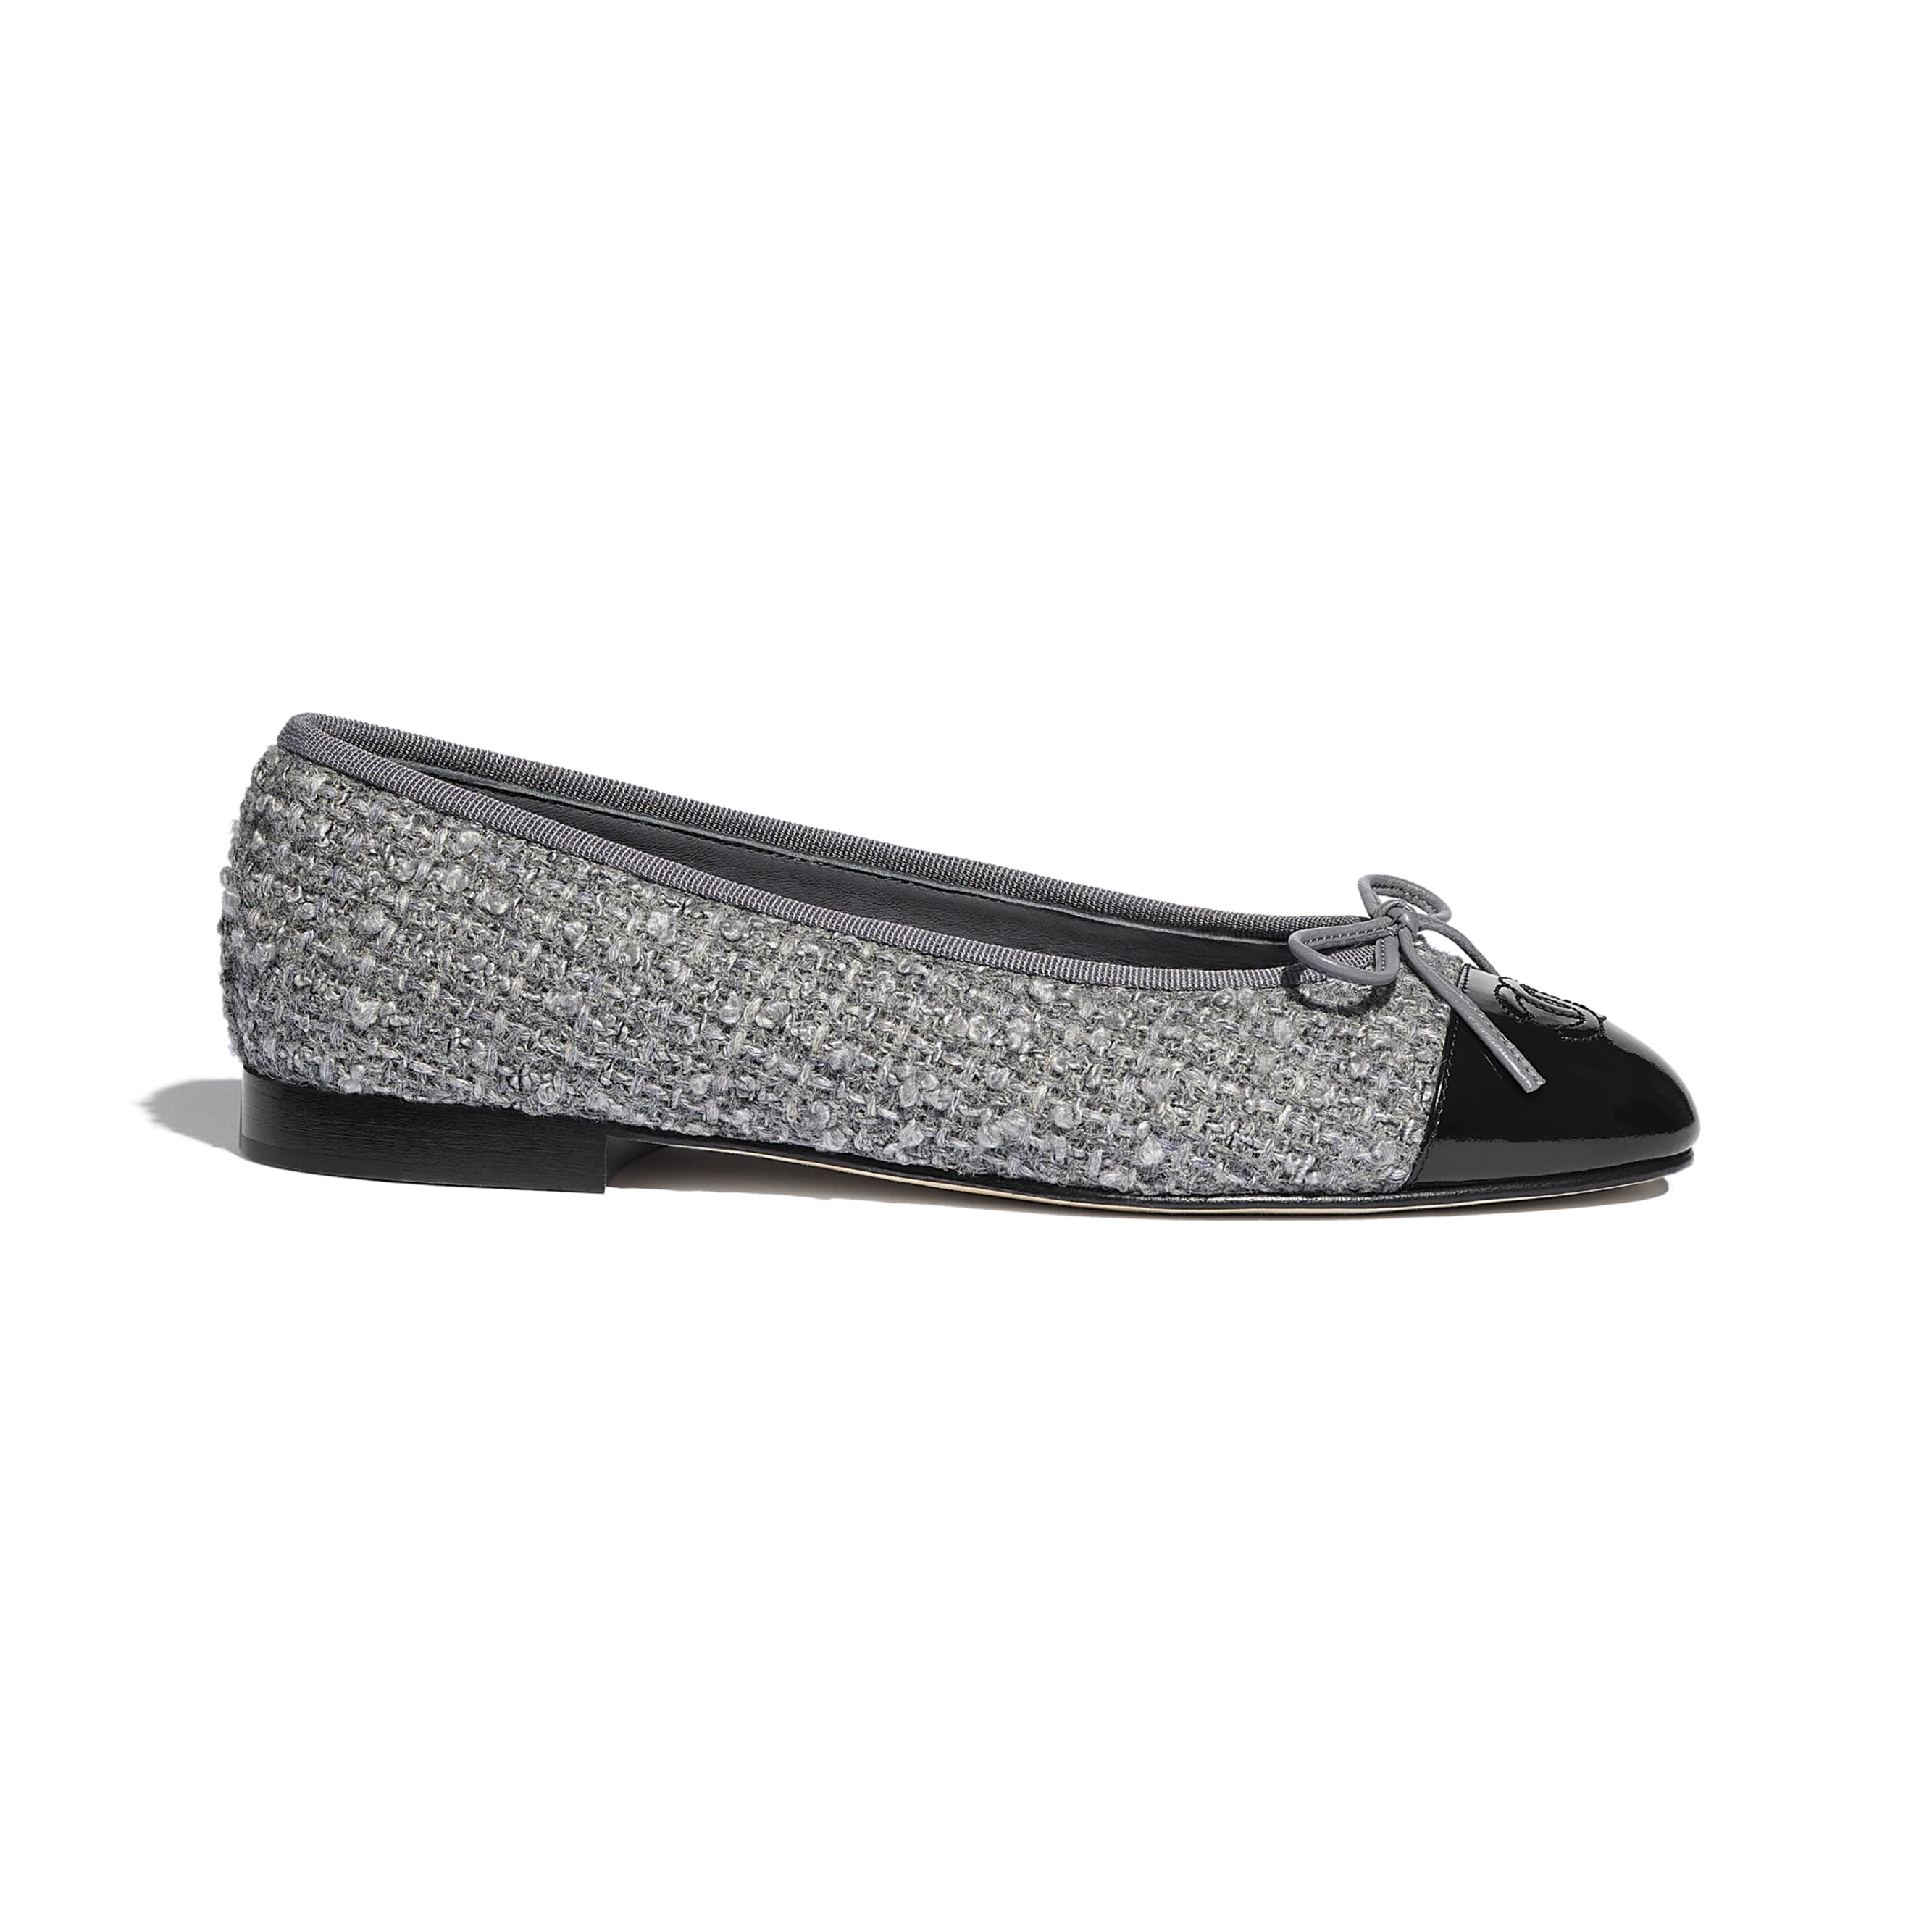 Flats - Grey & Black - Tweed & Calfskin - CHANEL - Default view - see standard sized version